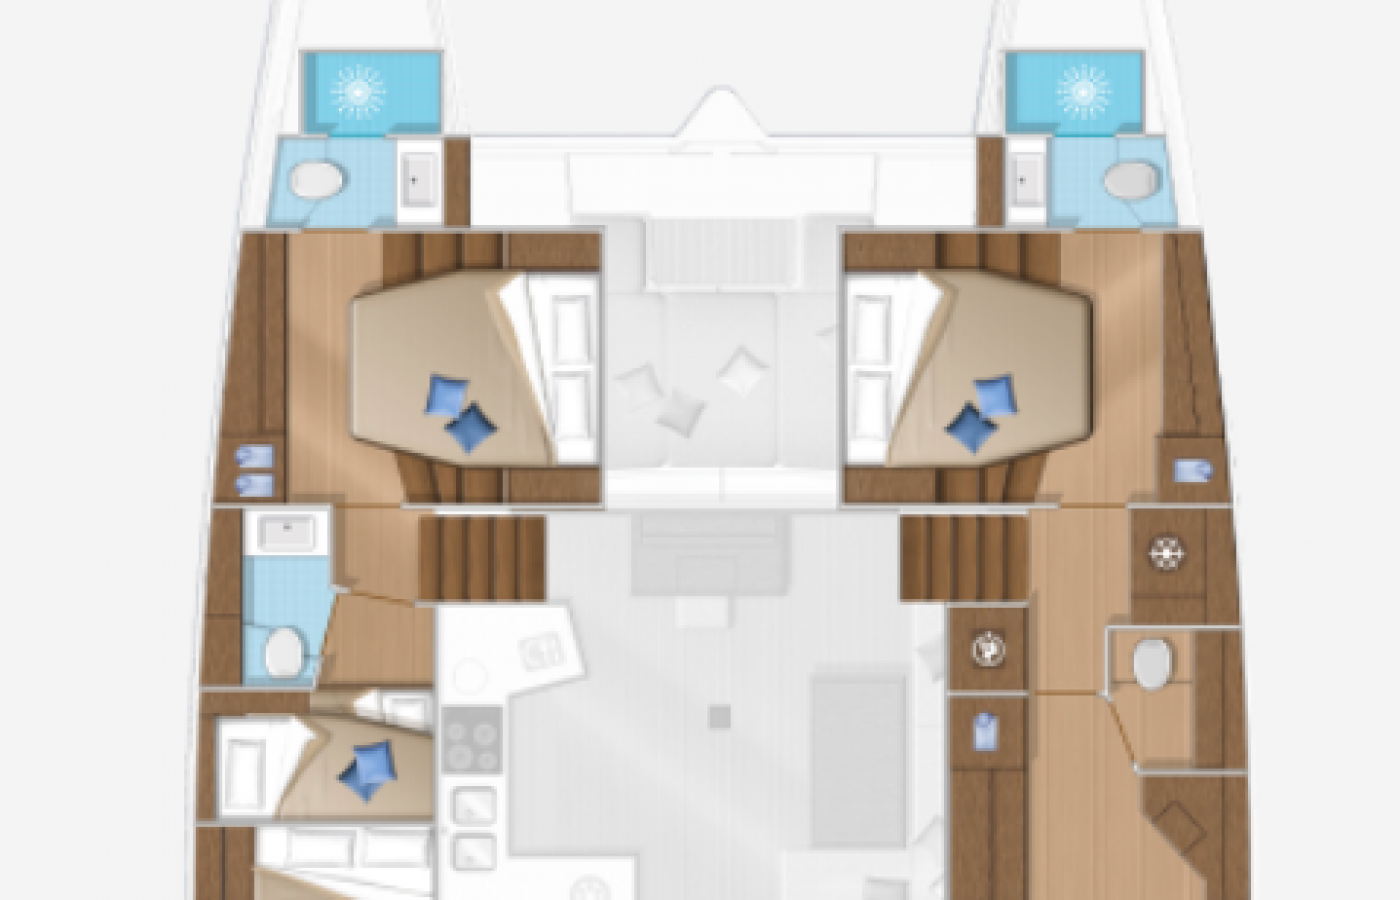 Layout of the Lagoon 52F Samoa including cabins